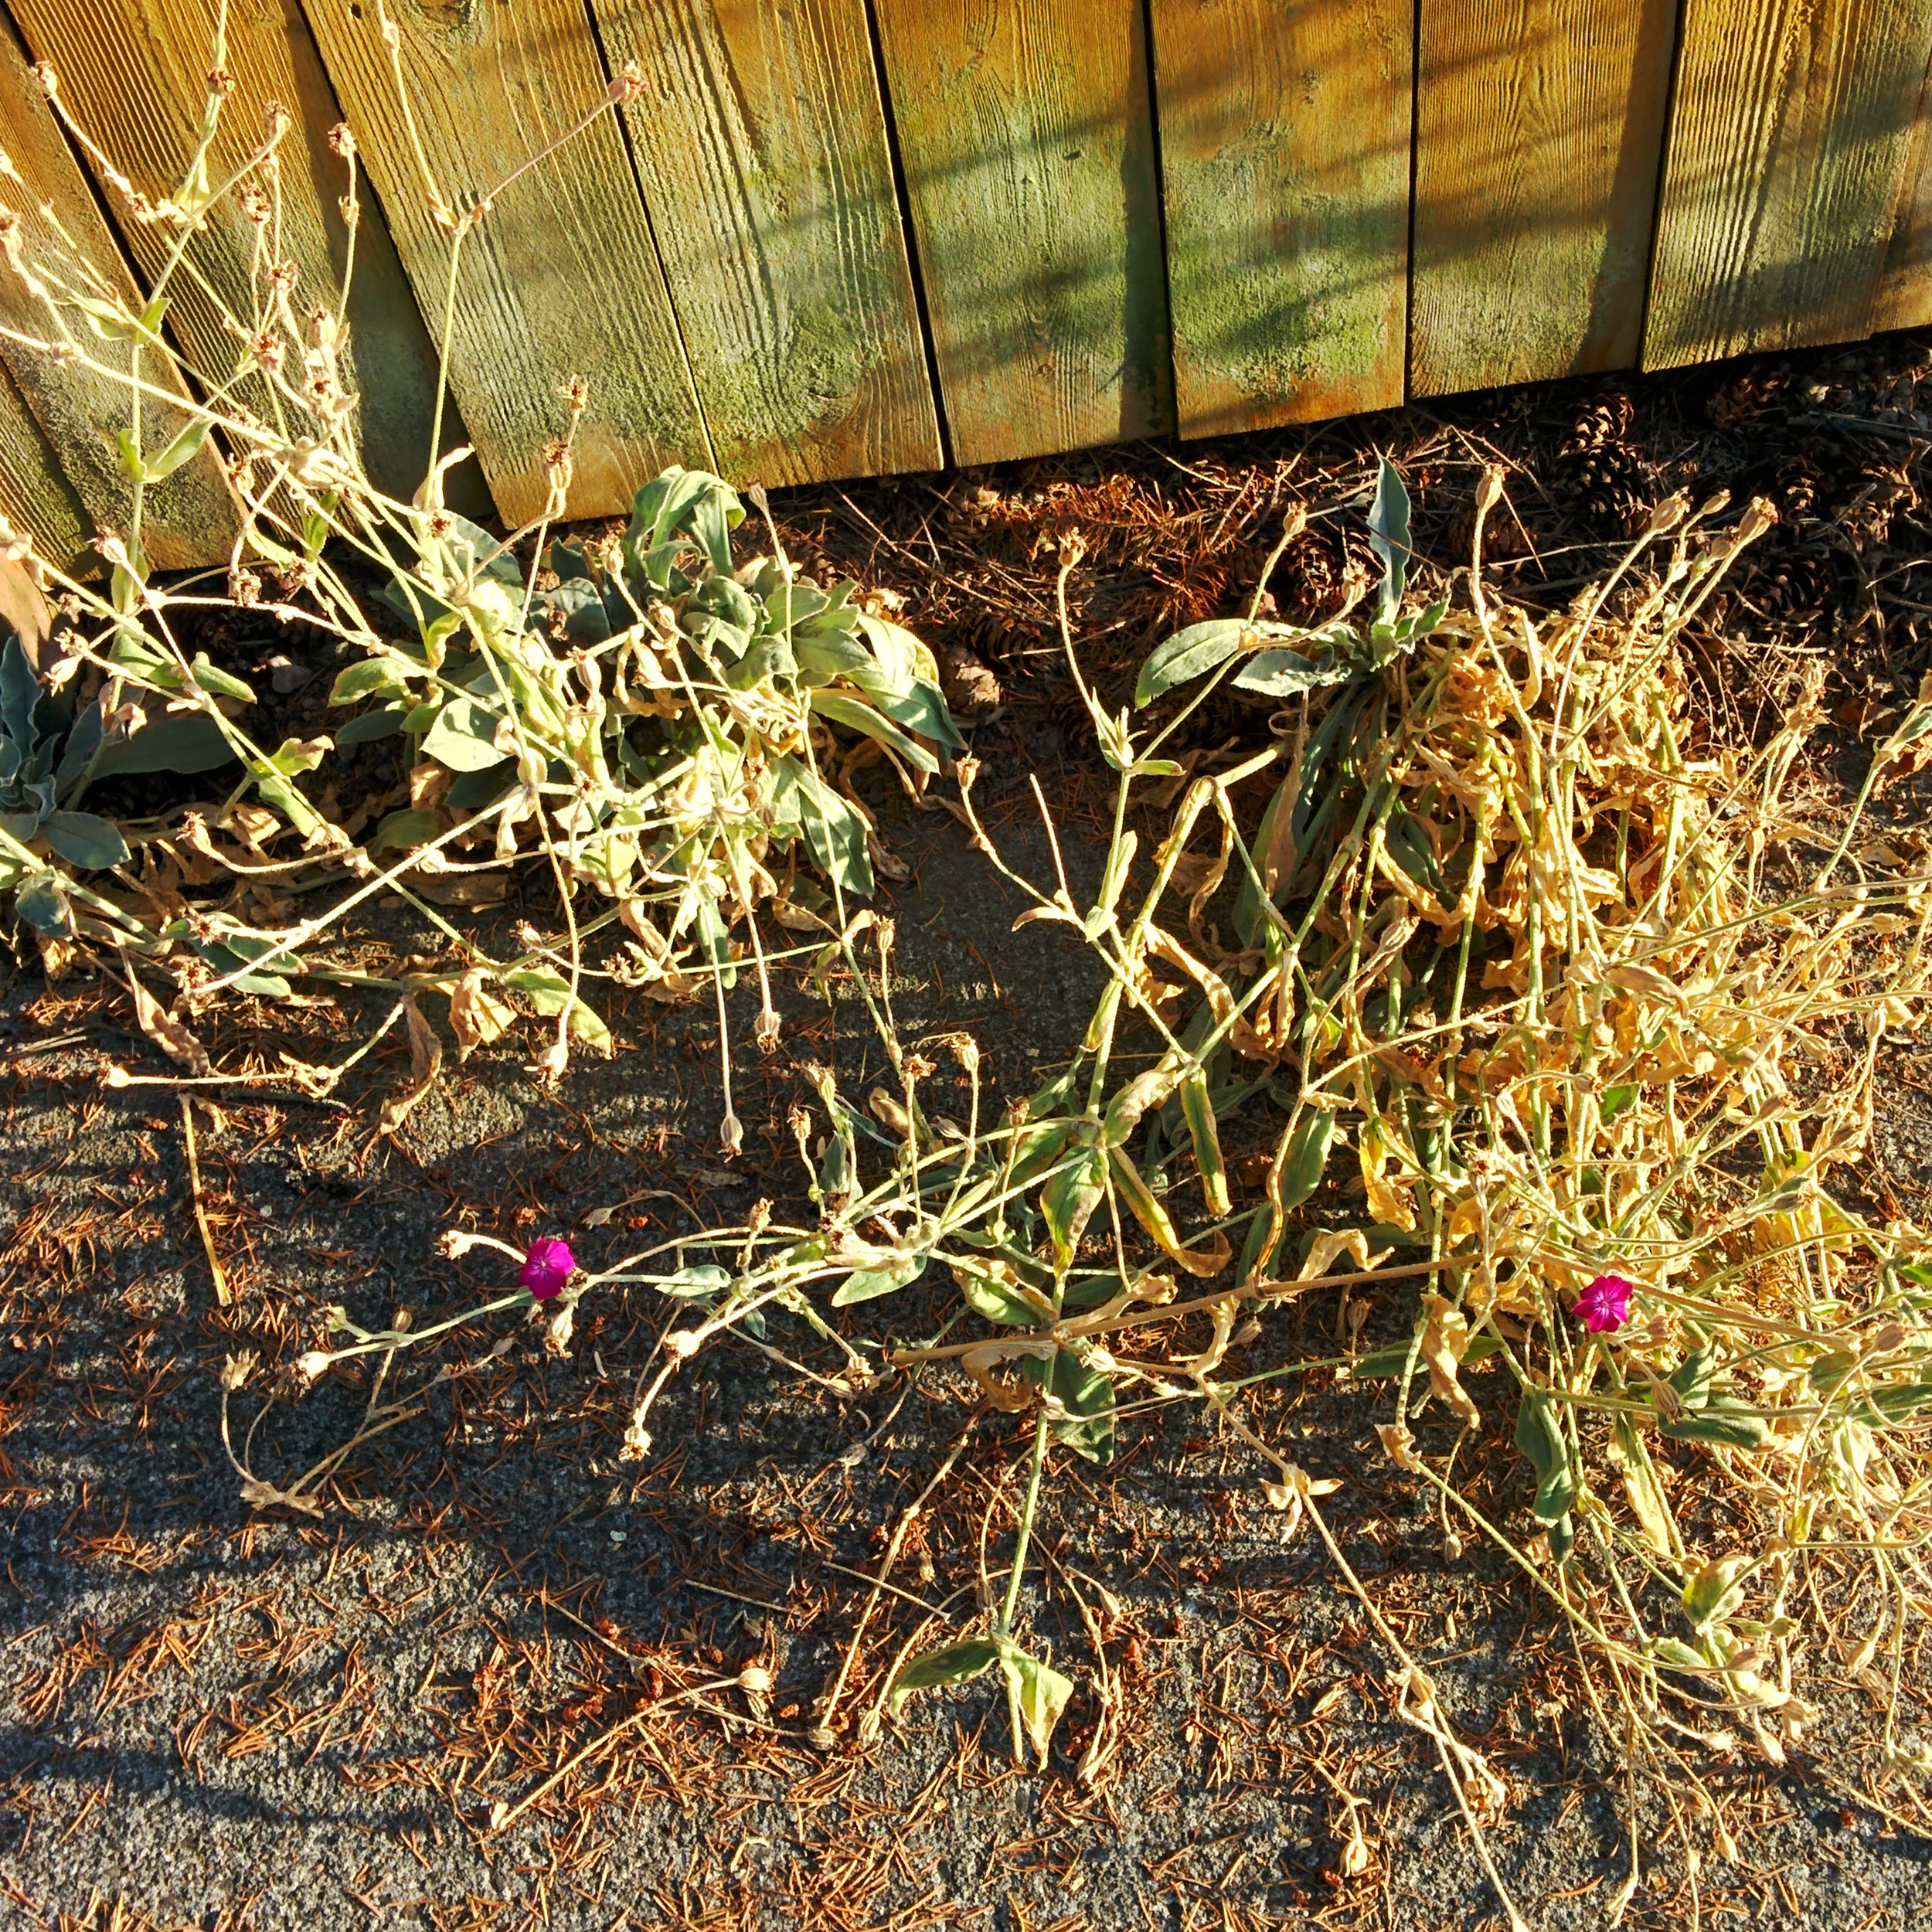 Weeds Drying by Fence